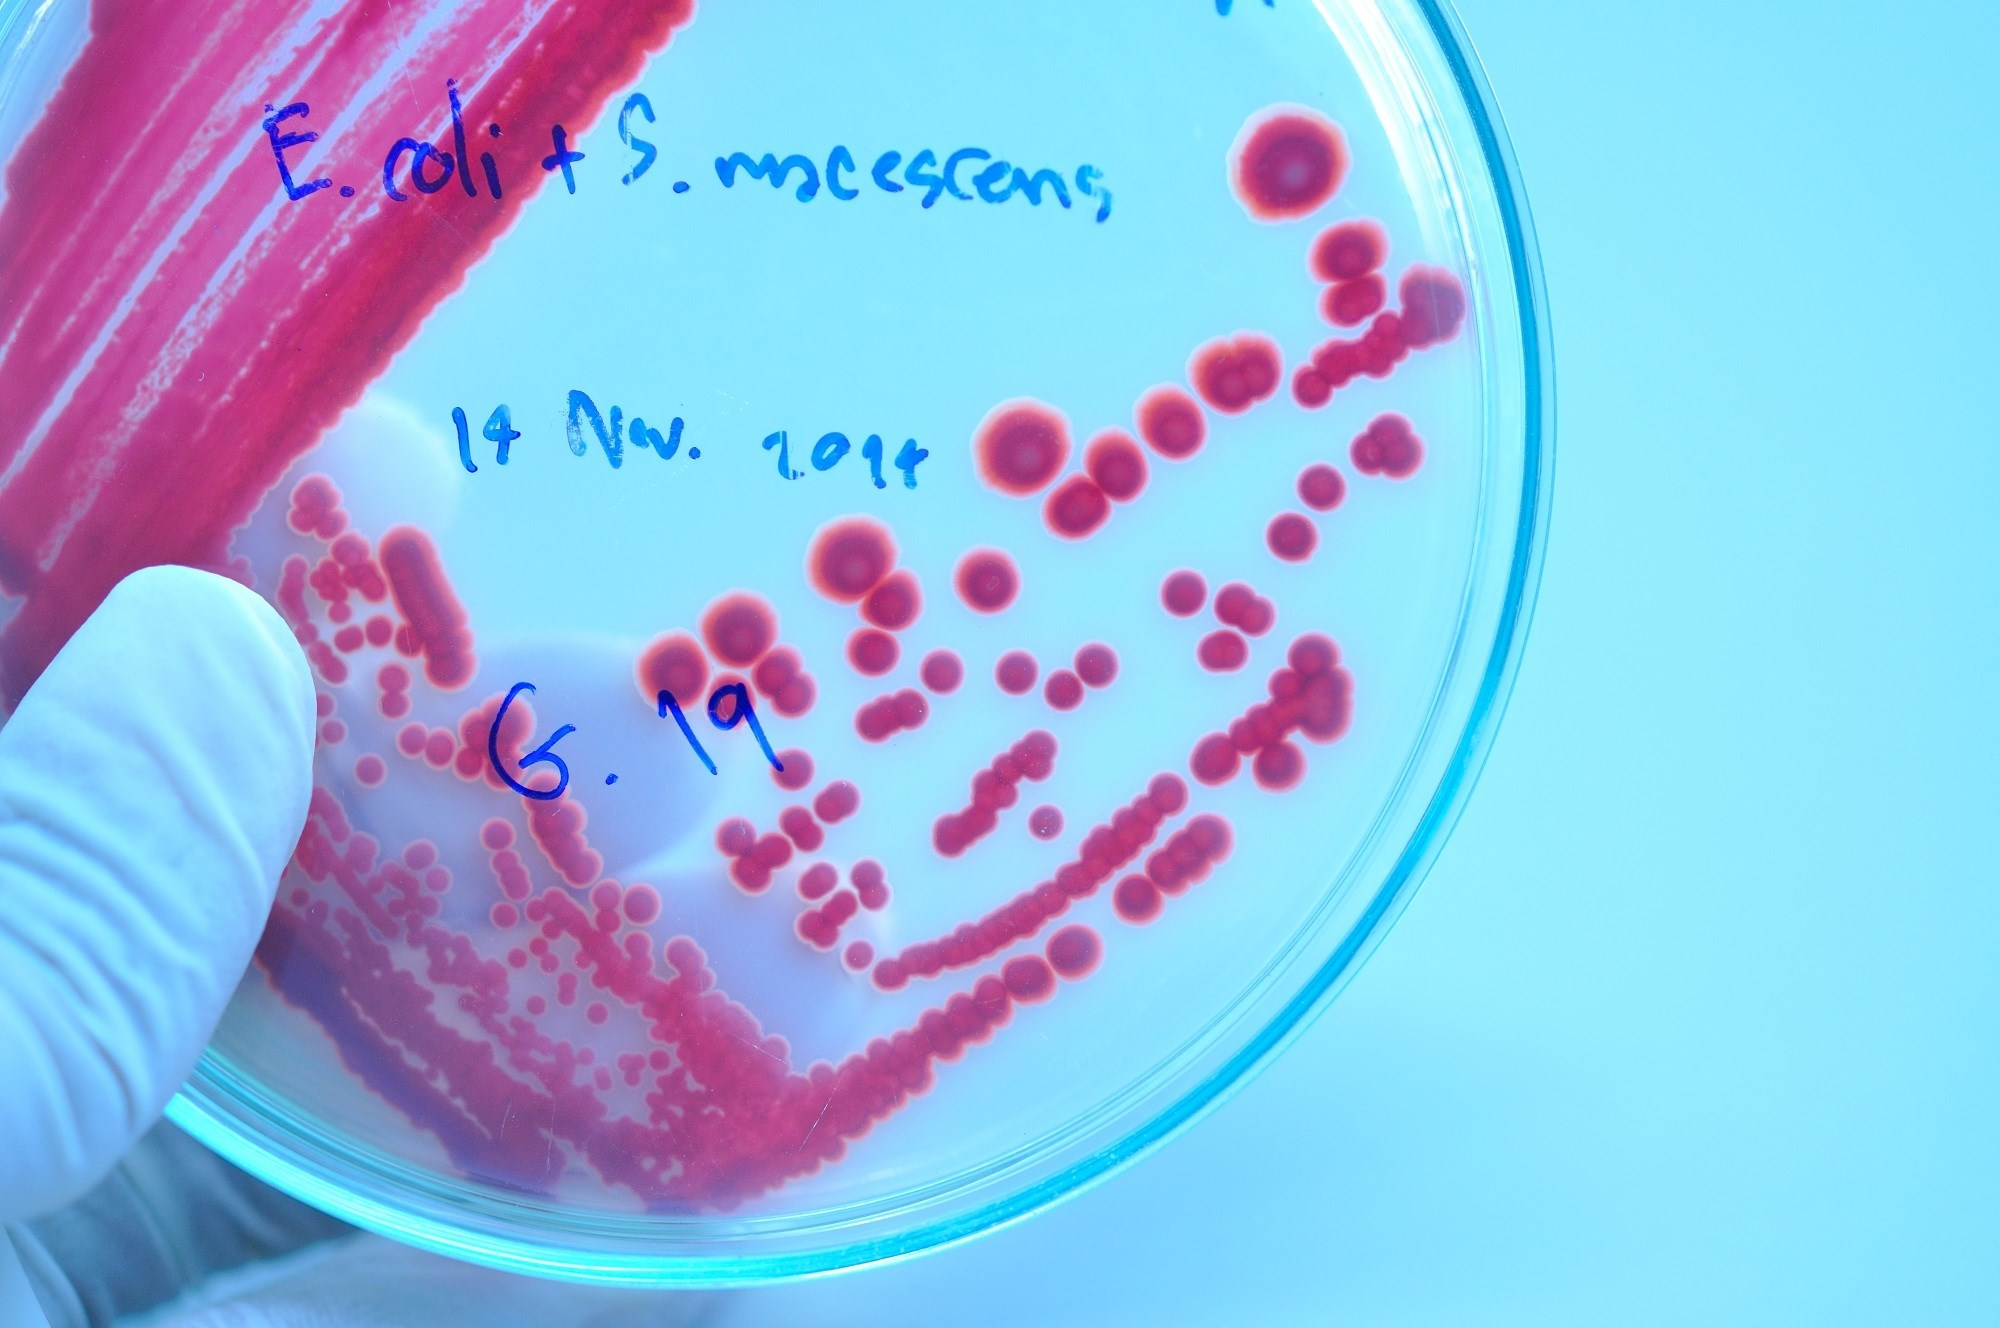 High Dose Pivmecillinam Effective for UTIs Caused by Resistant Escherichia coli